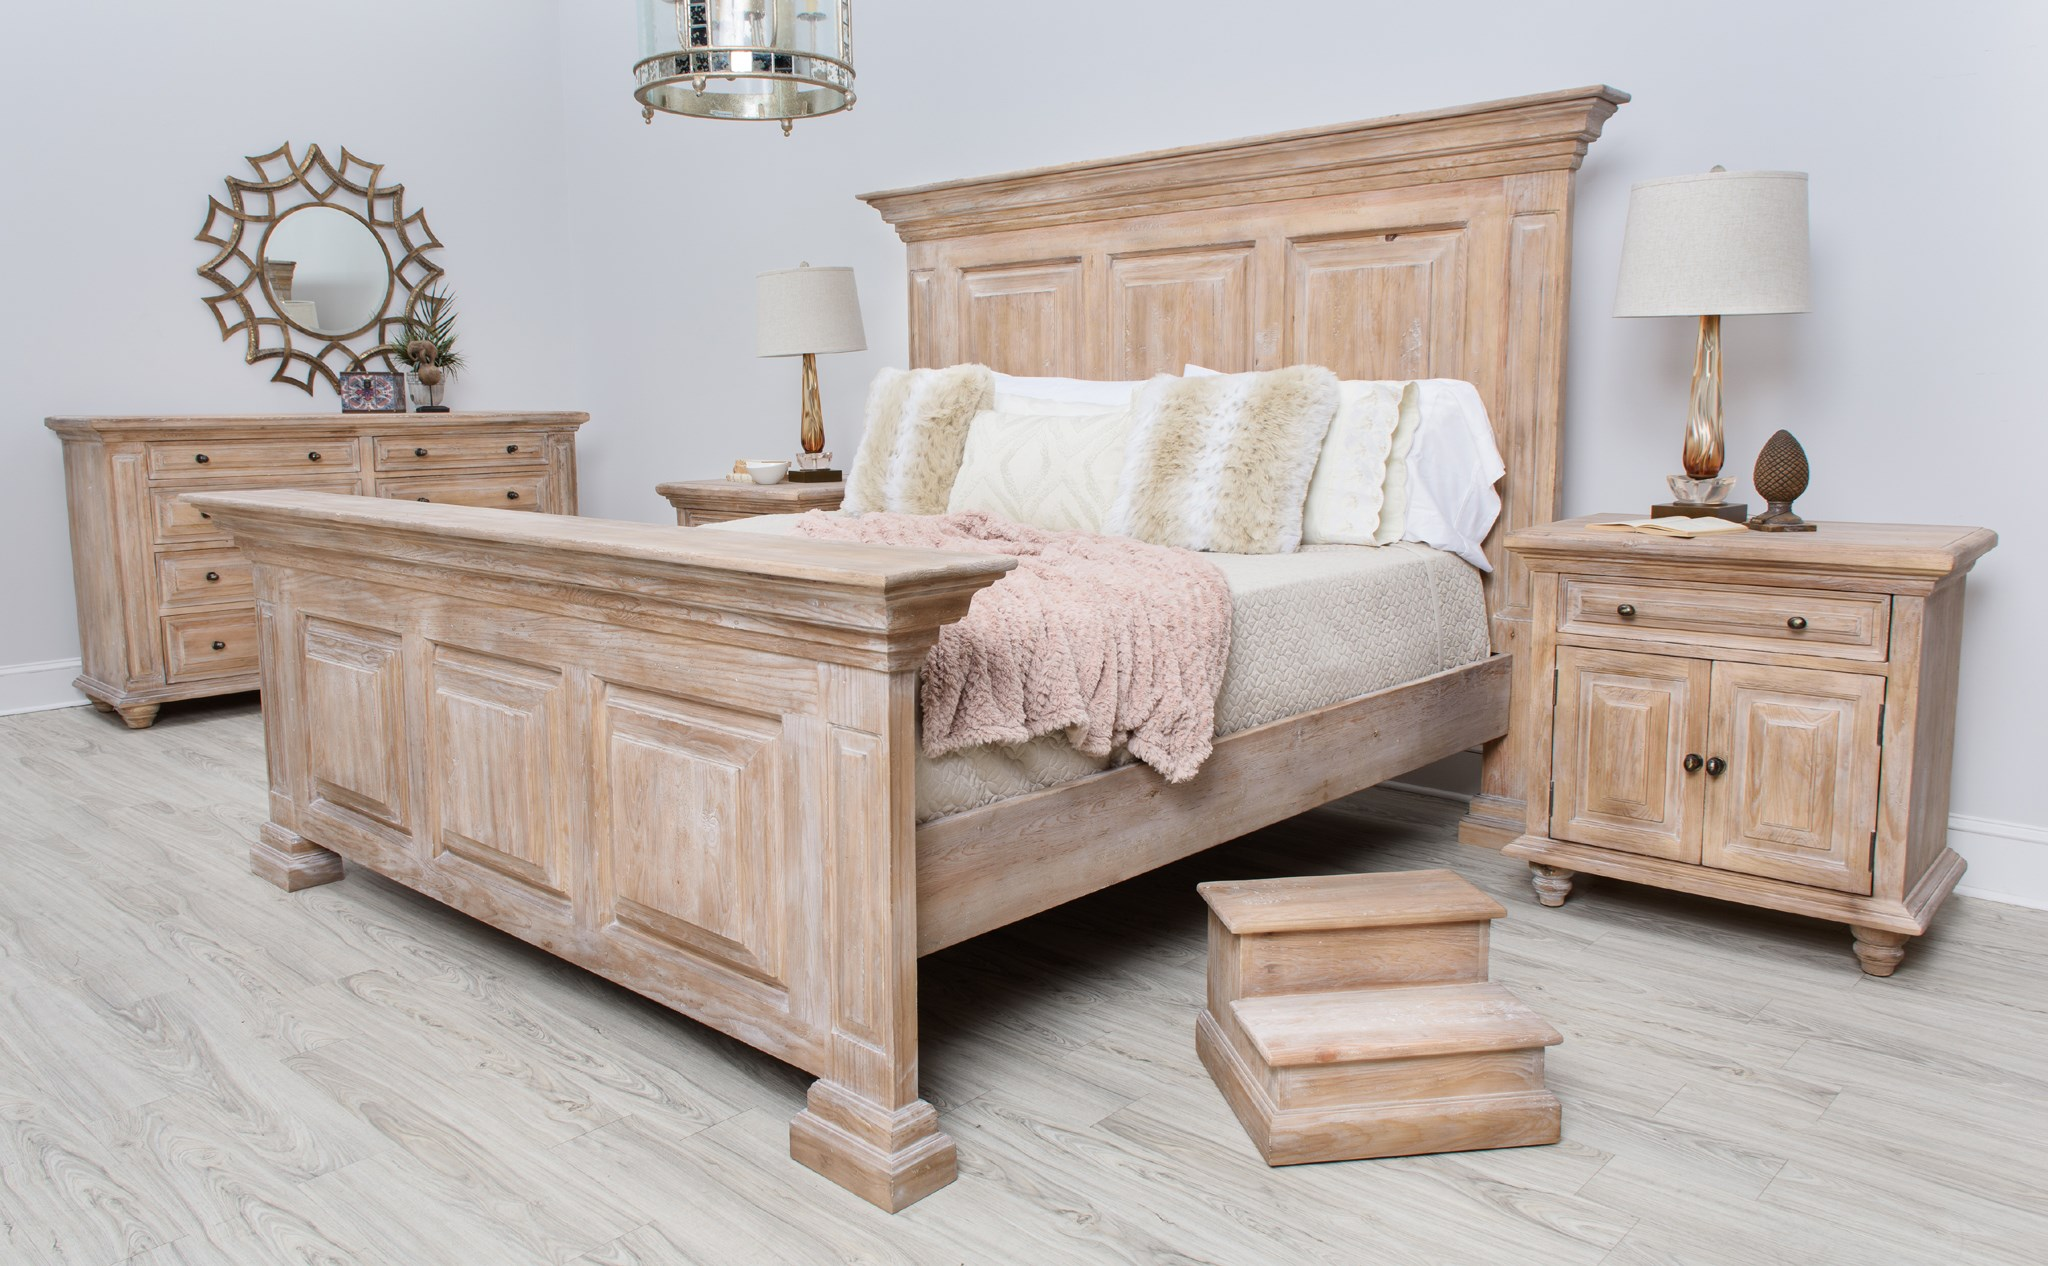 Step for Bed Natural White